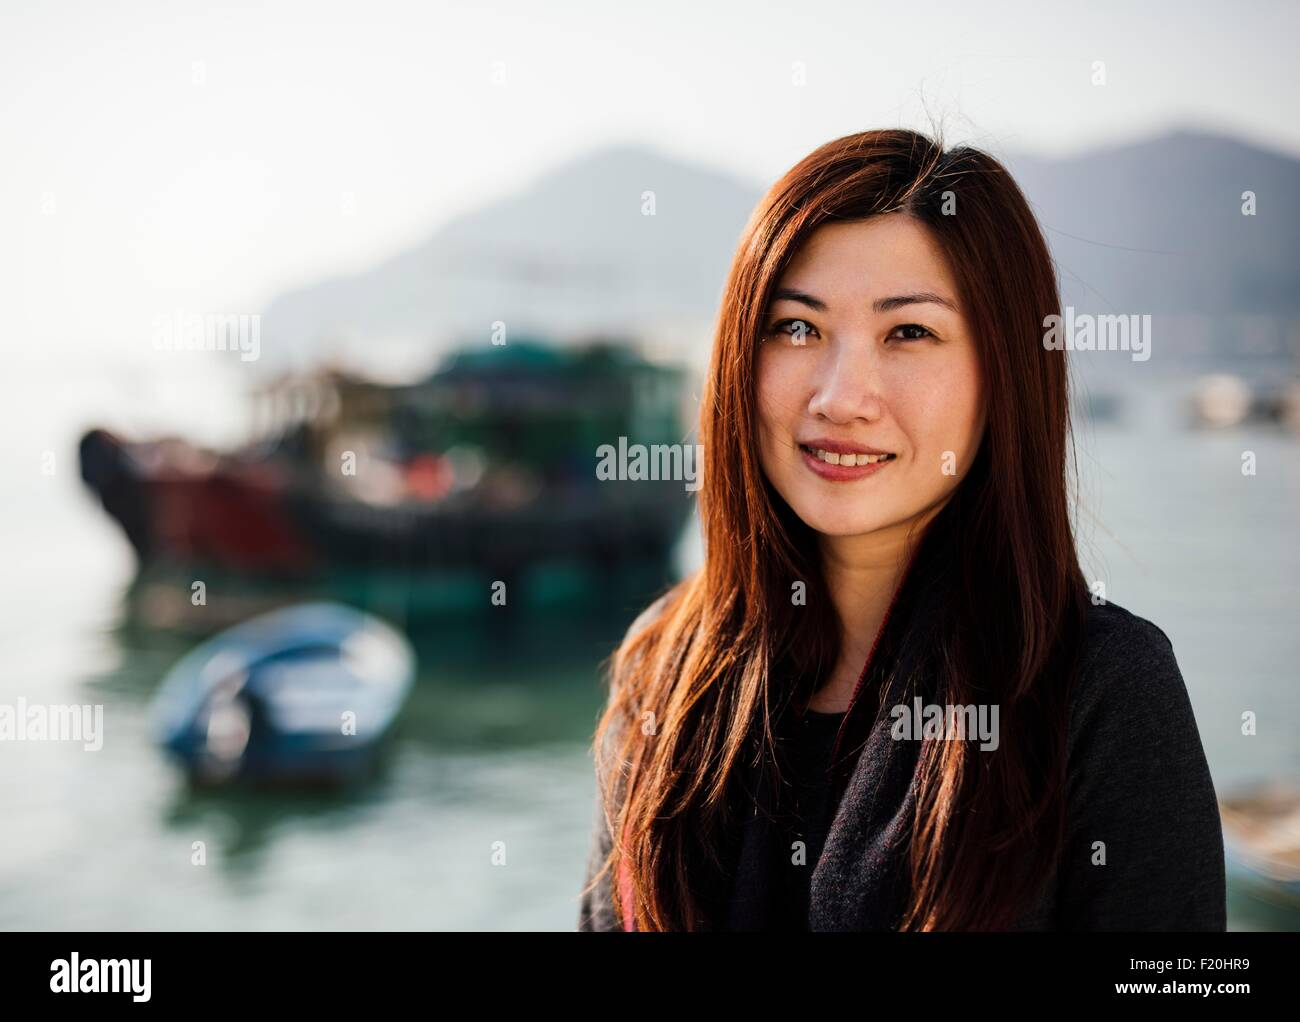 Portrait of mid adult woman in front of boats on water, looking at camera smiling - Stock Image